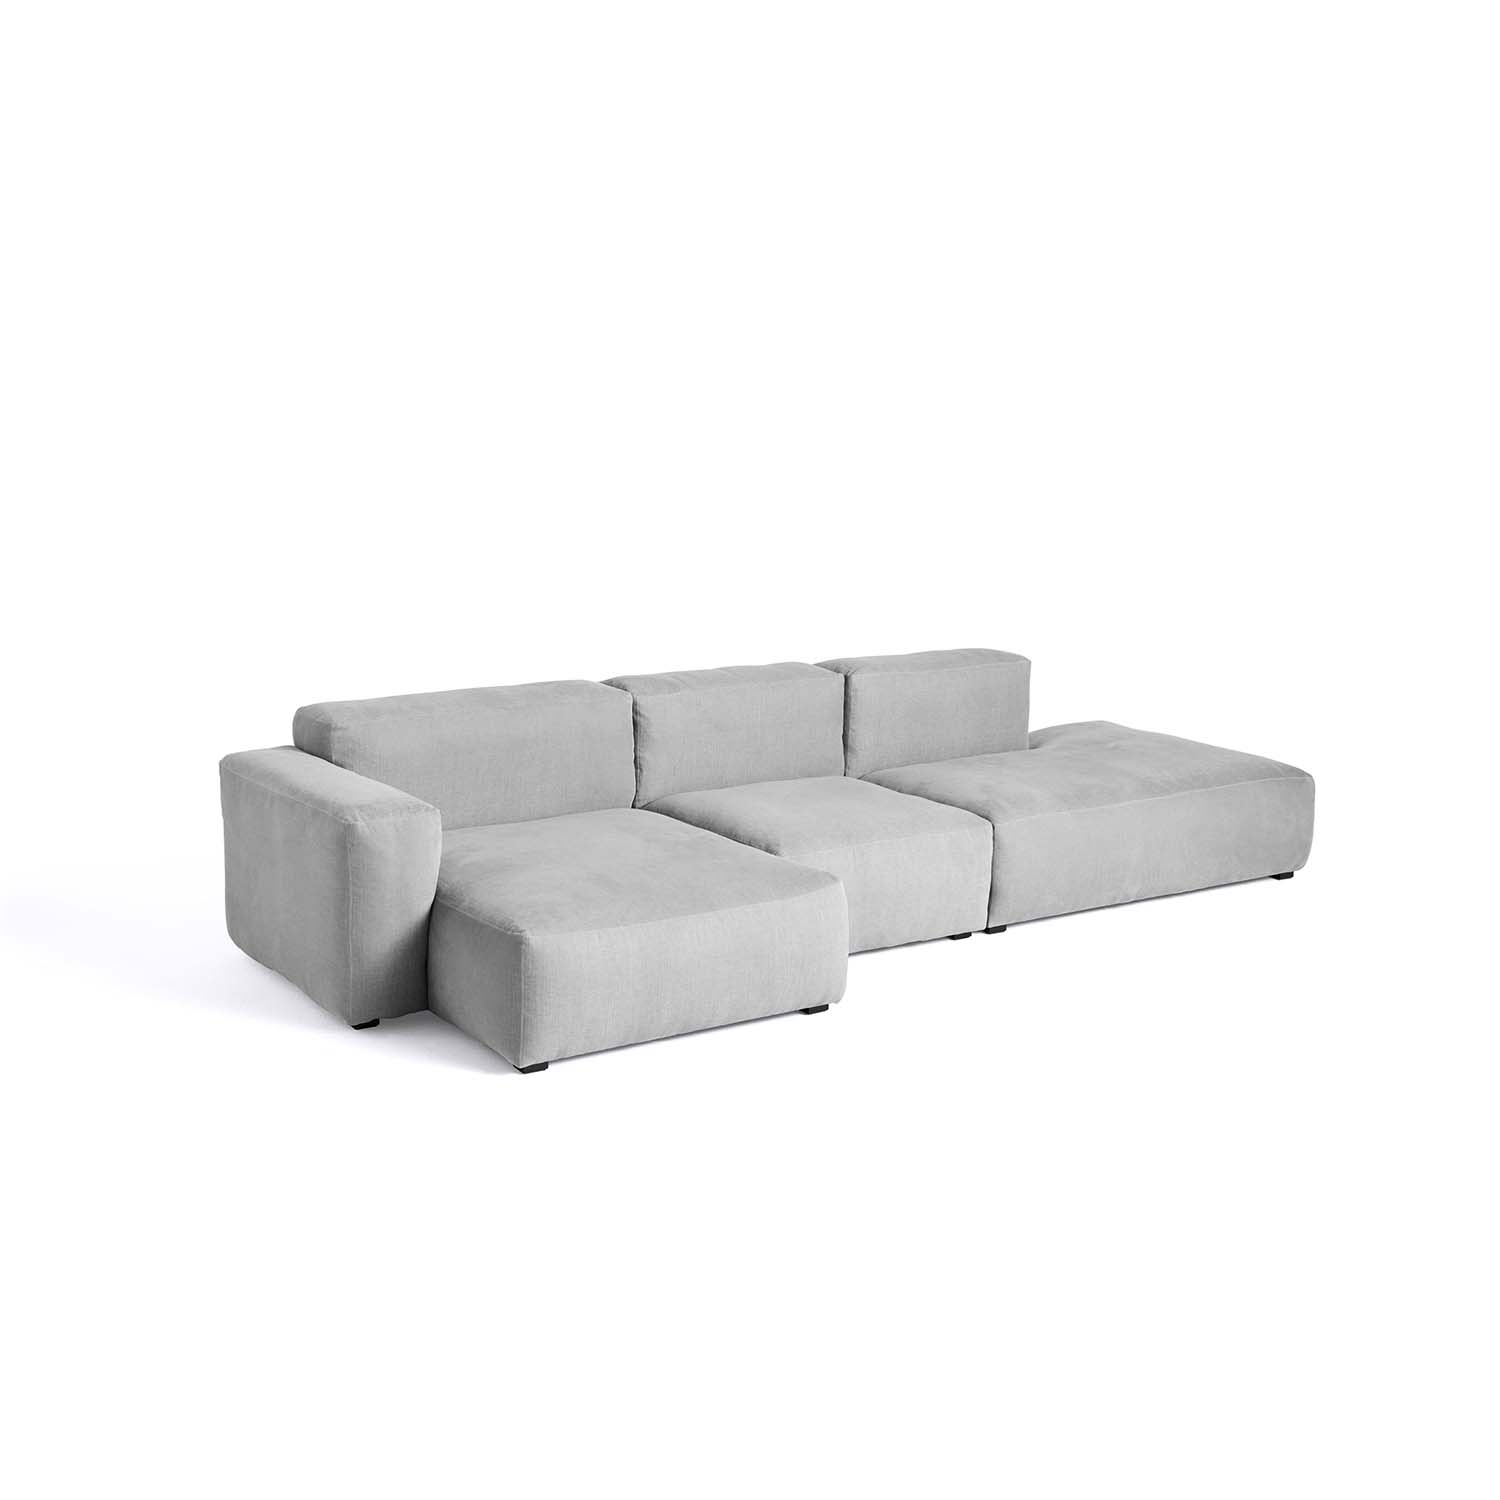 Bilde av Hay-Mags Sofa Soft 3 Seater Comb. 4 Left Low, Linara 443